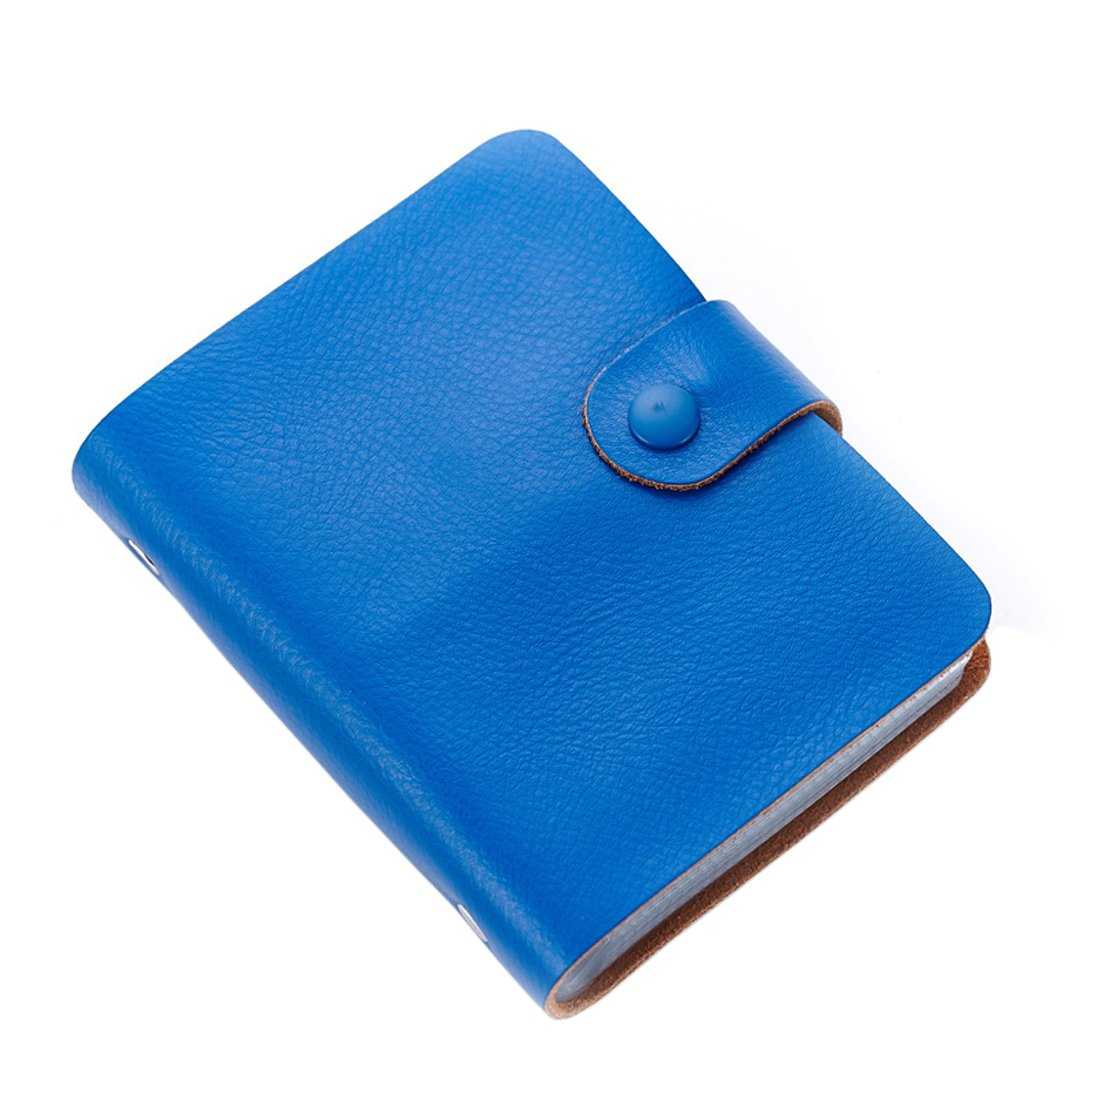 Business Card Holder, Boshiho Genuine Leather Credit Name ID Card Holder Book, Office Journal Business Cards Organizer (Blue)